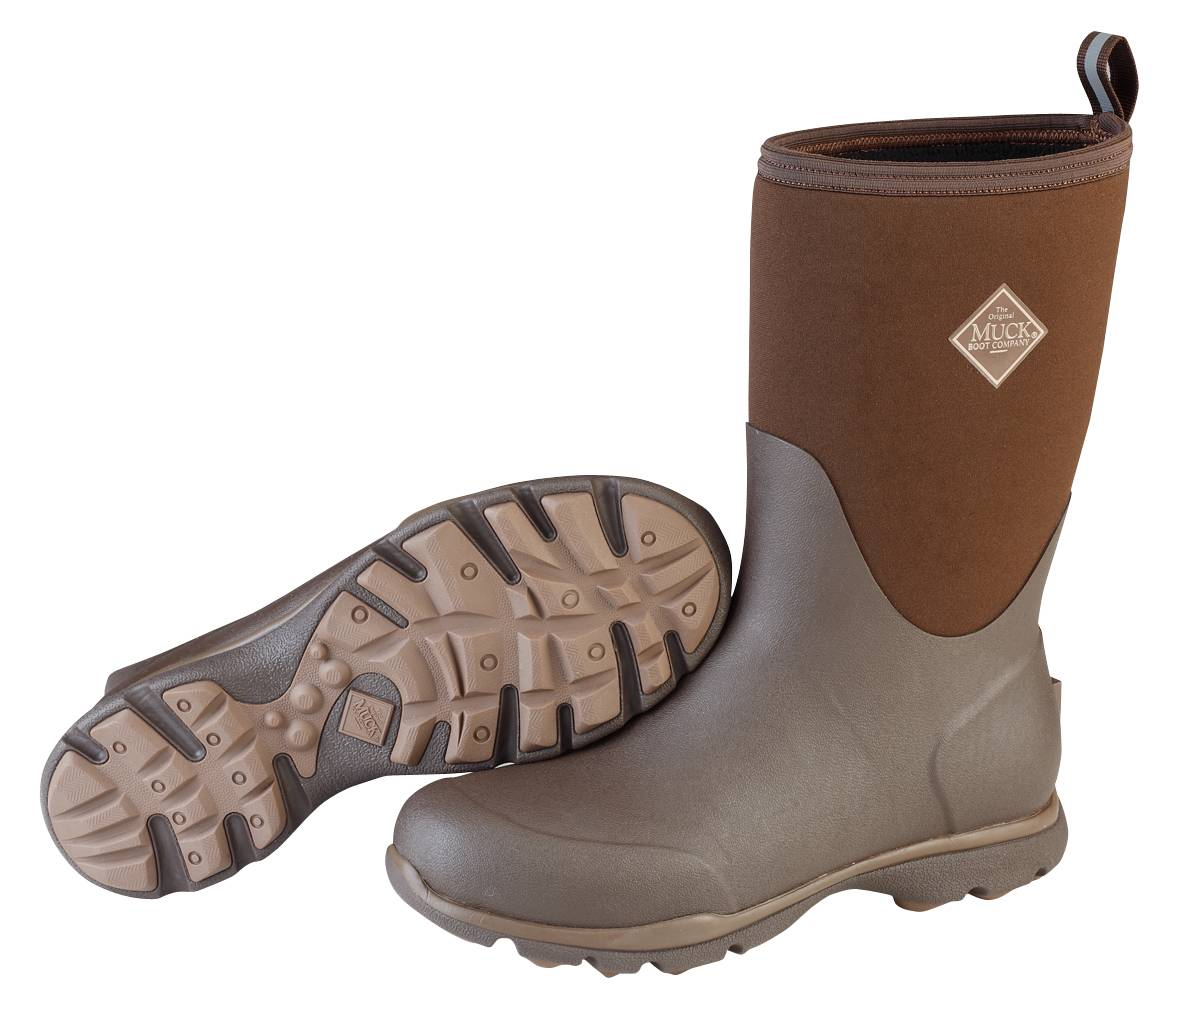 Muck Boots Mens Zx Arctic Excursion Mid - Chocolate Desert Palm